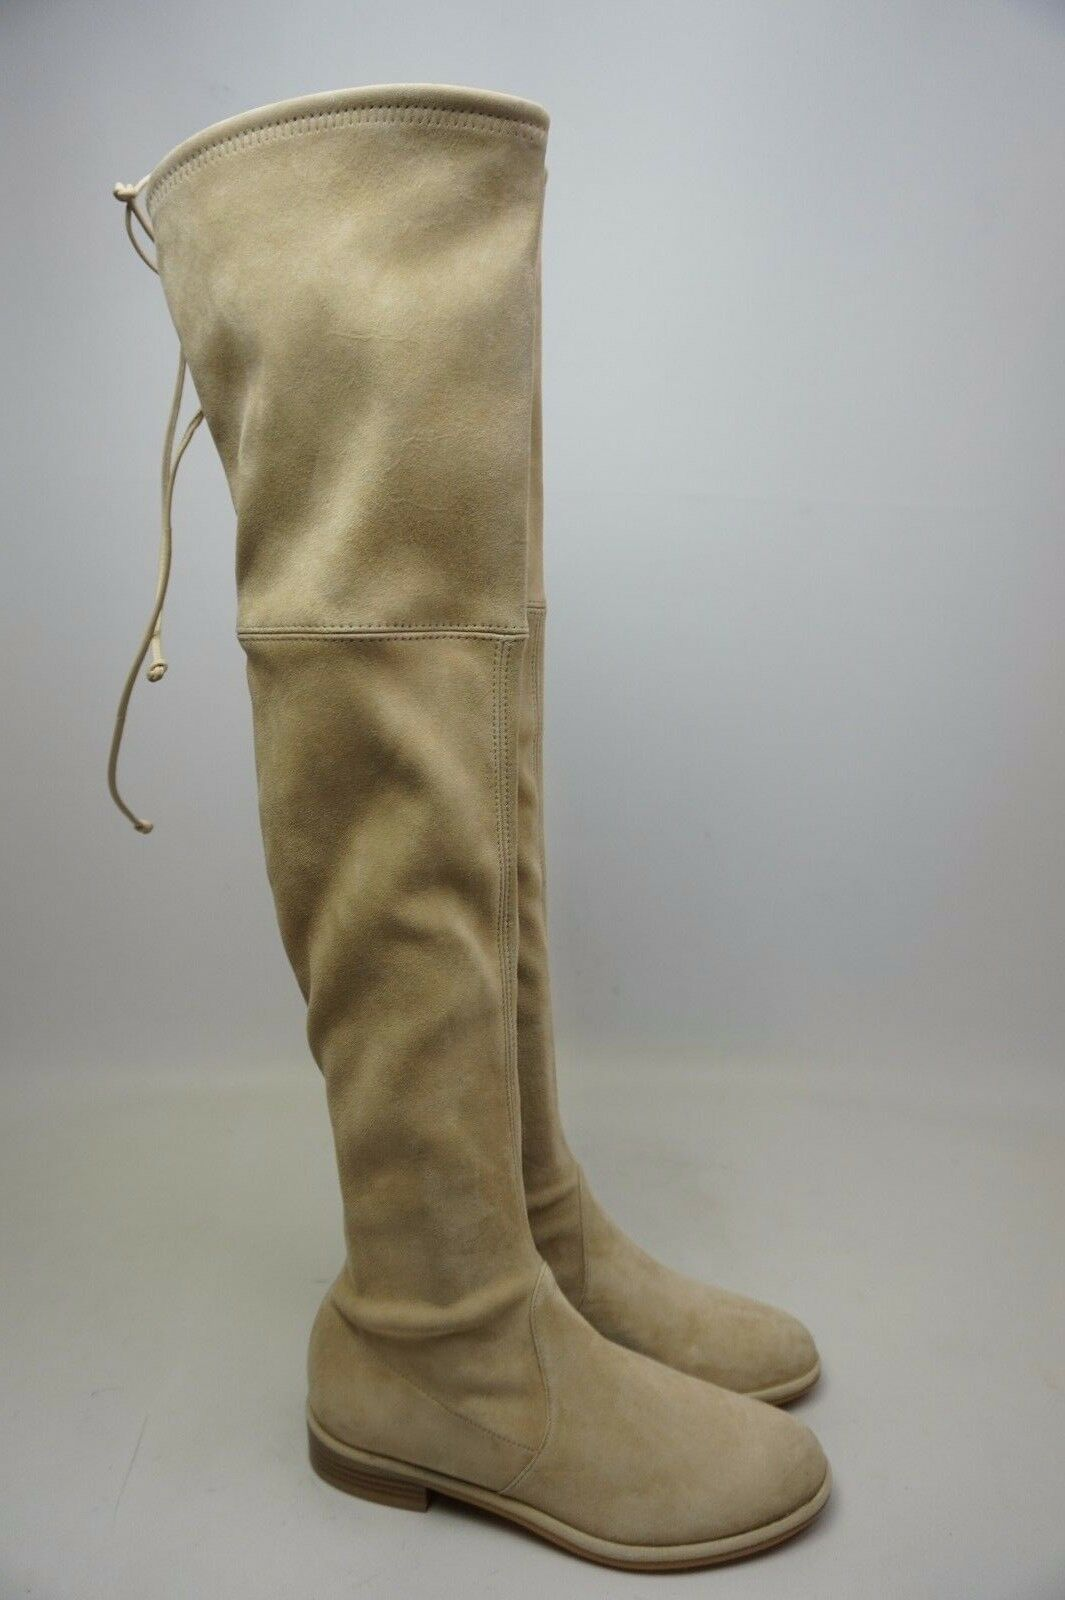 Stuart Weitzman Lowland Over the Knee Suede Boots Buff Size 5 M